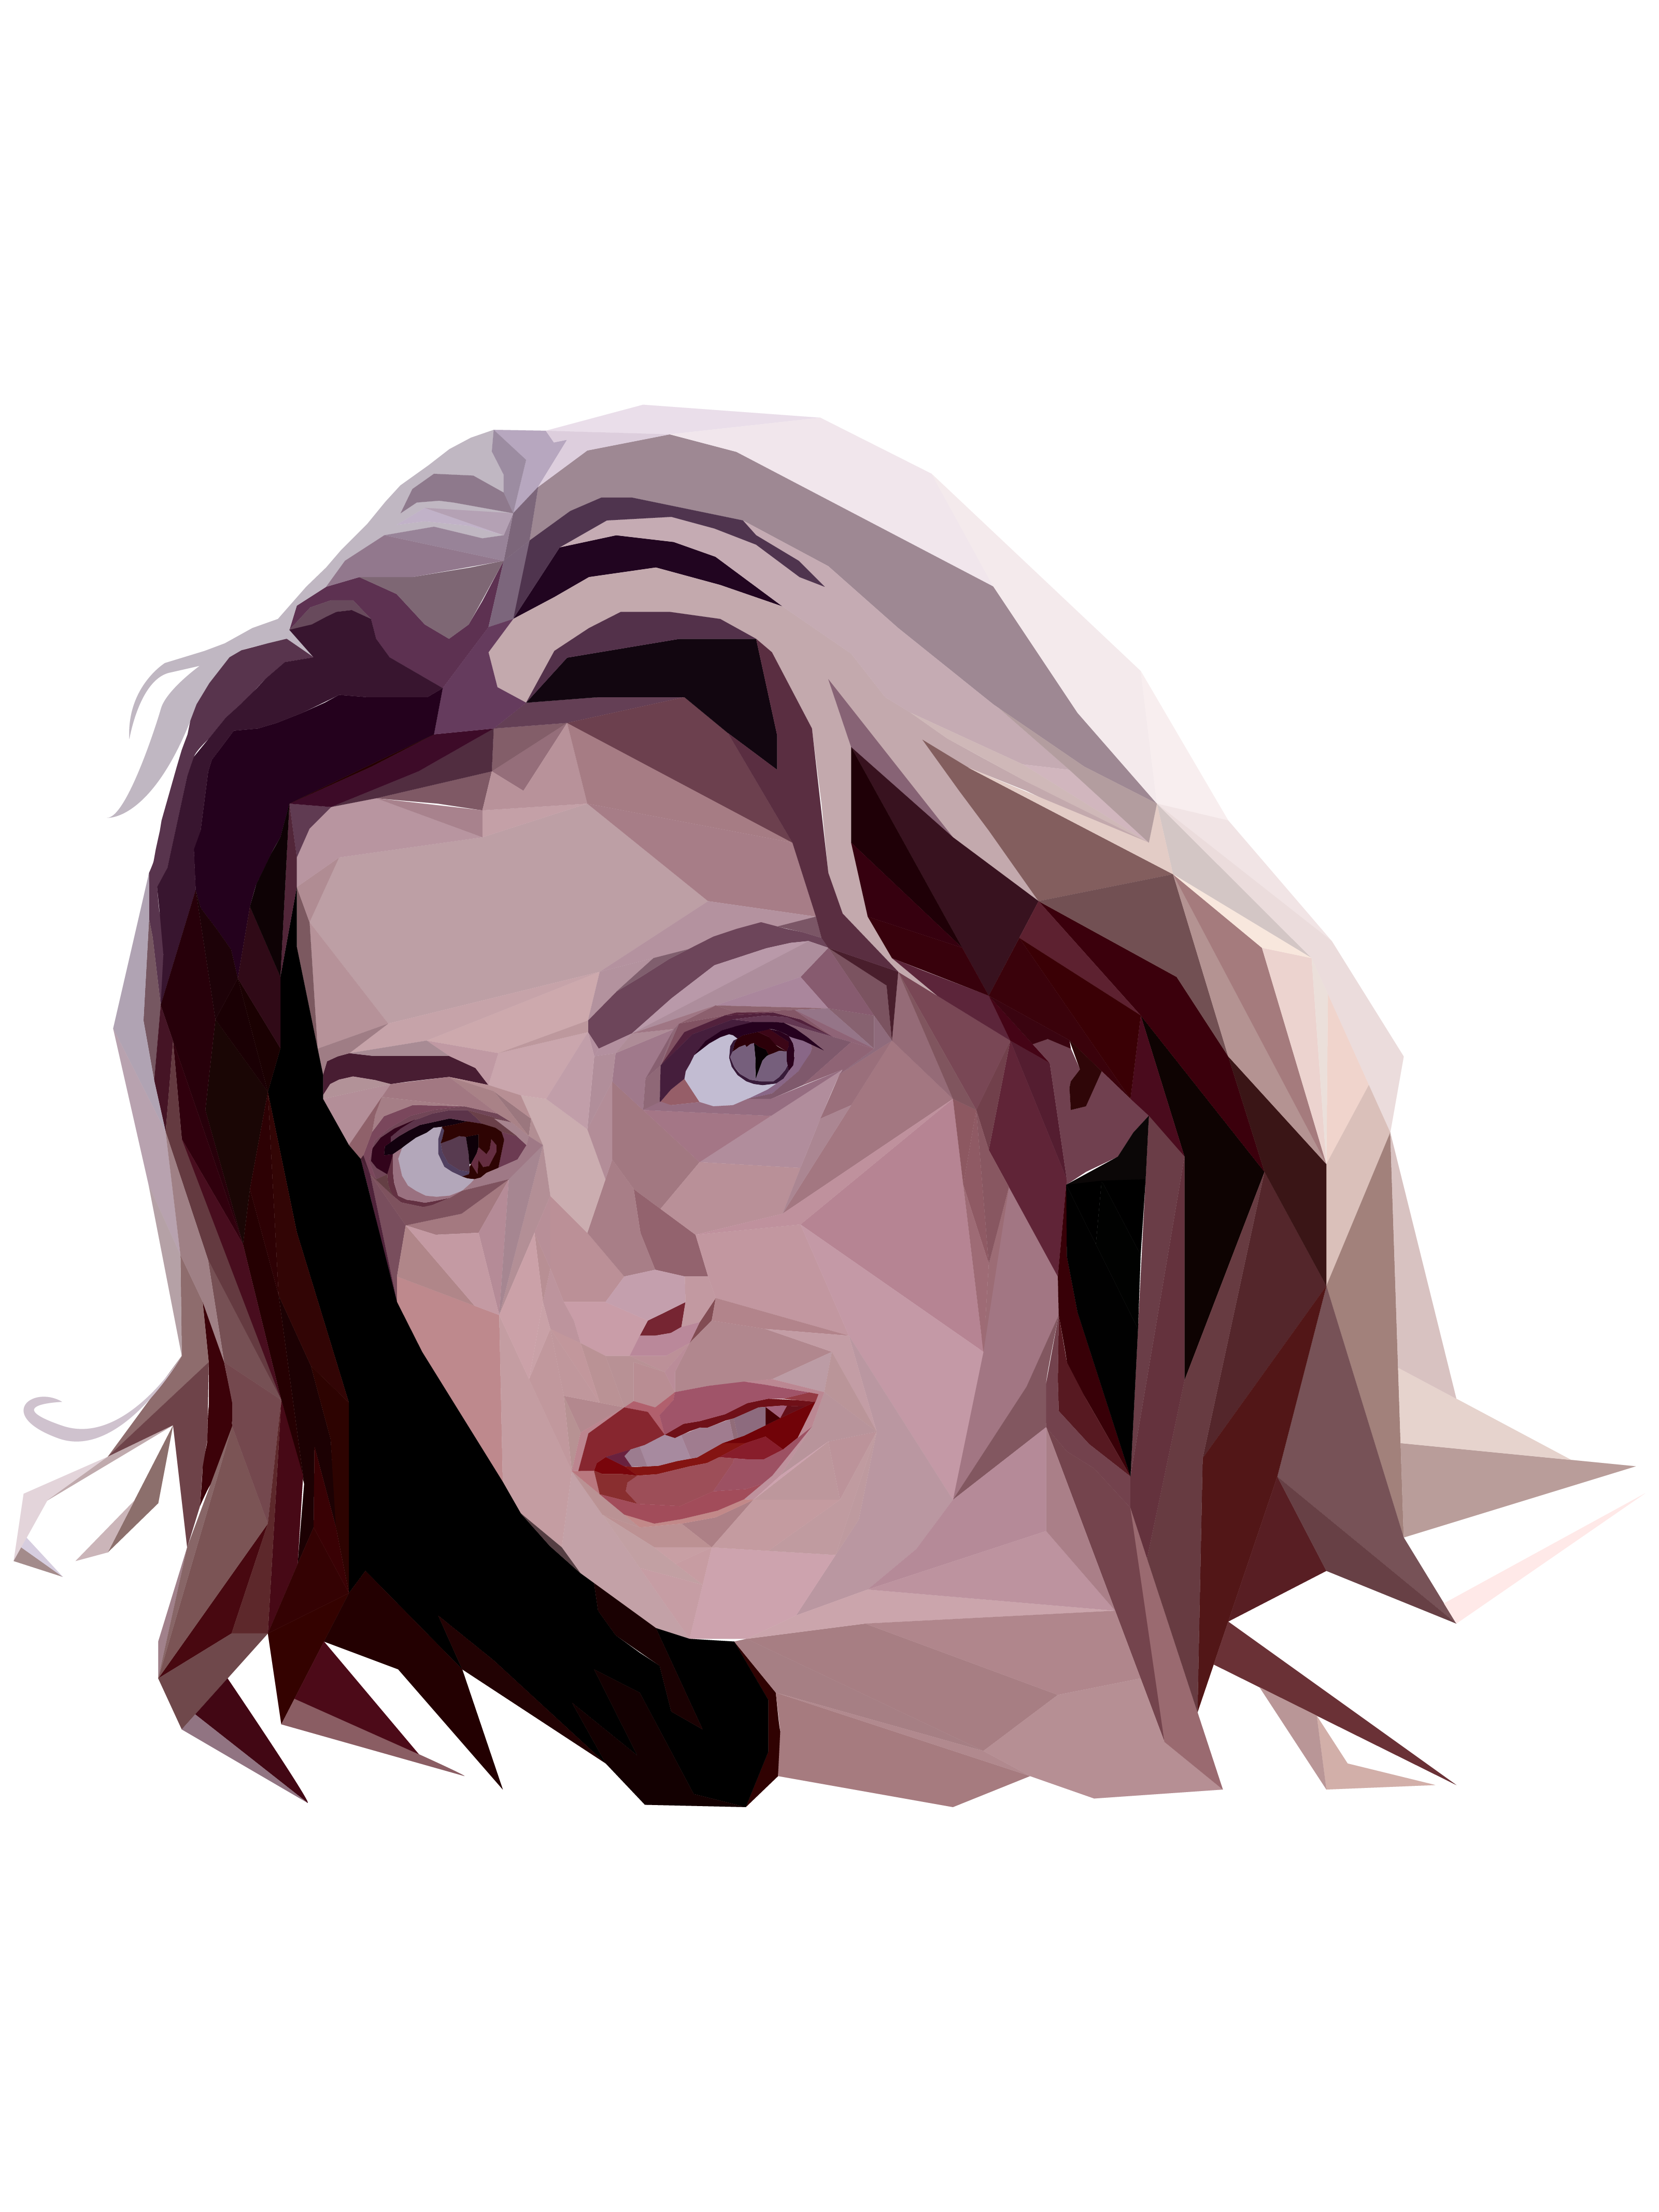 Famous ISFJ Anne Hathaway